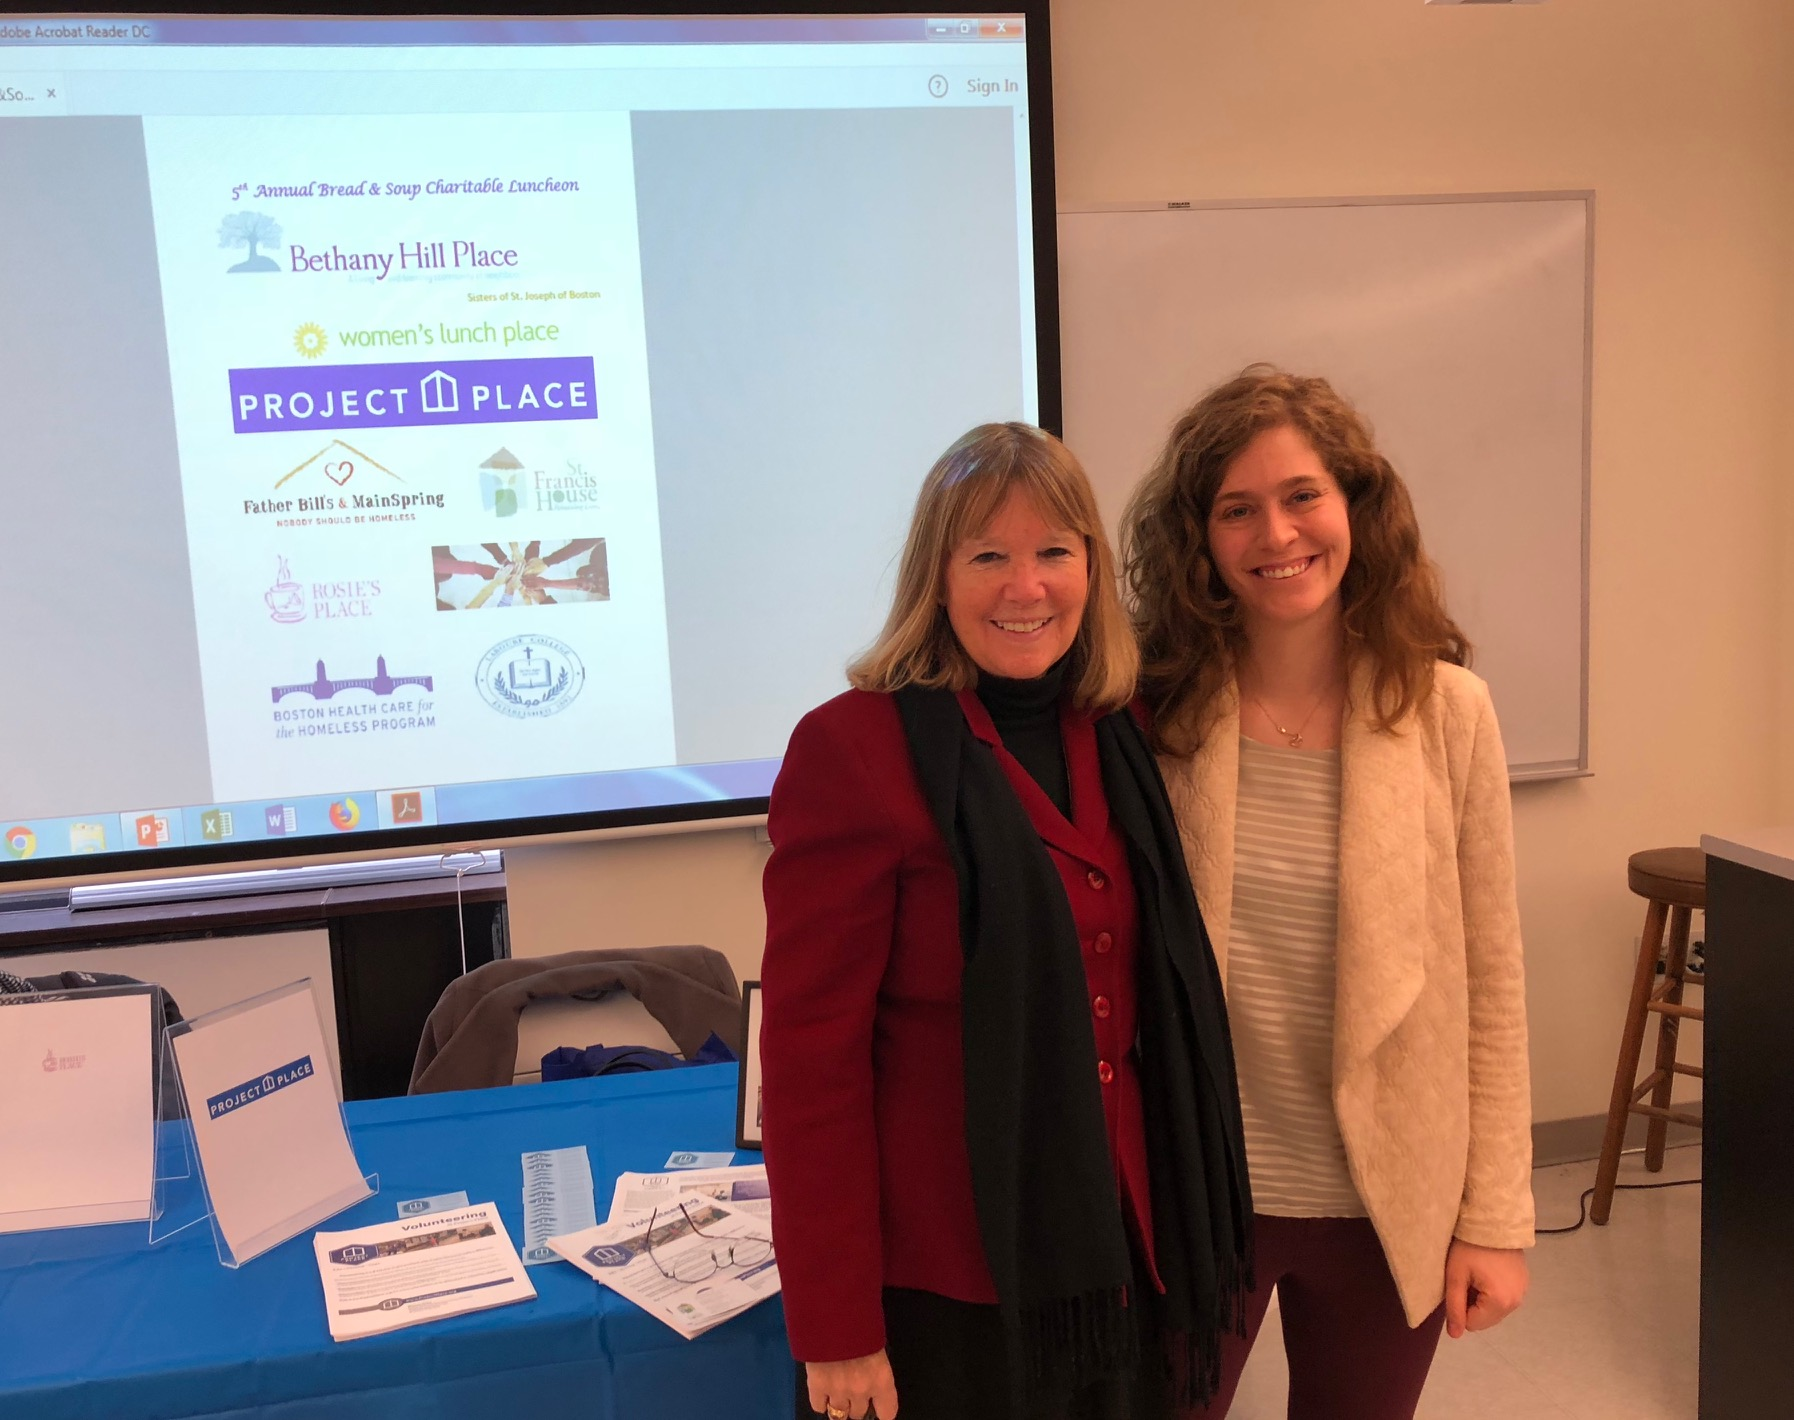 5th Annual Bread & Soup Luncheon - Featured Image